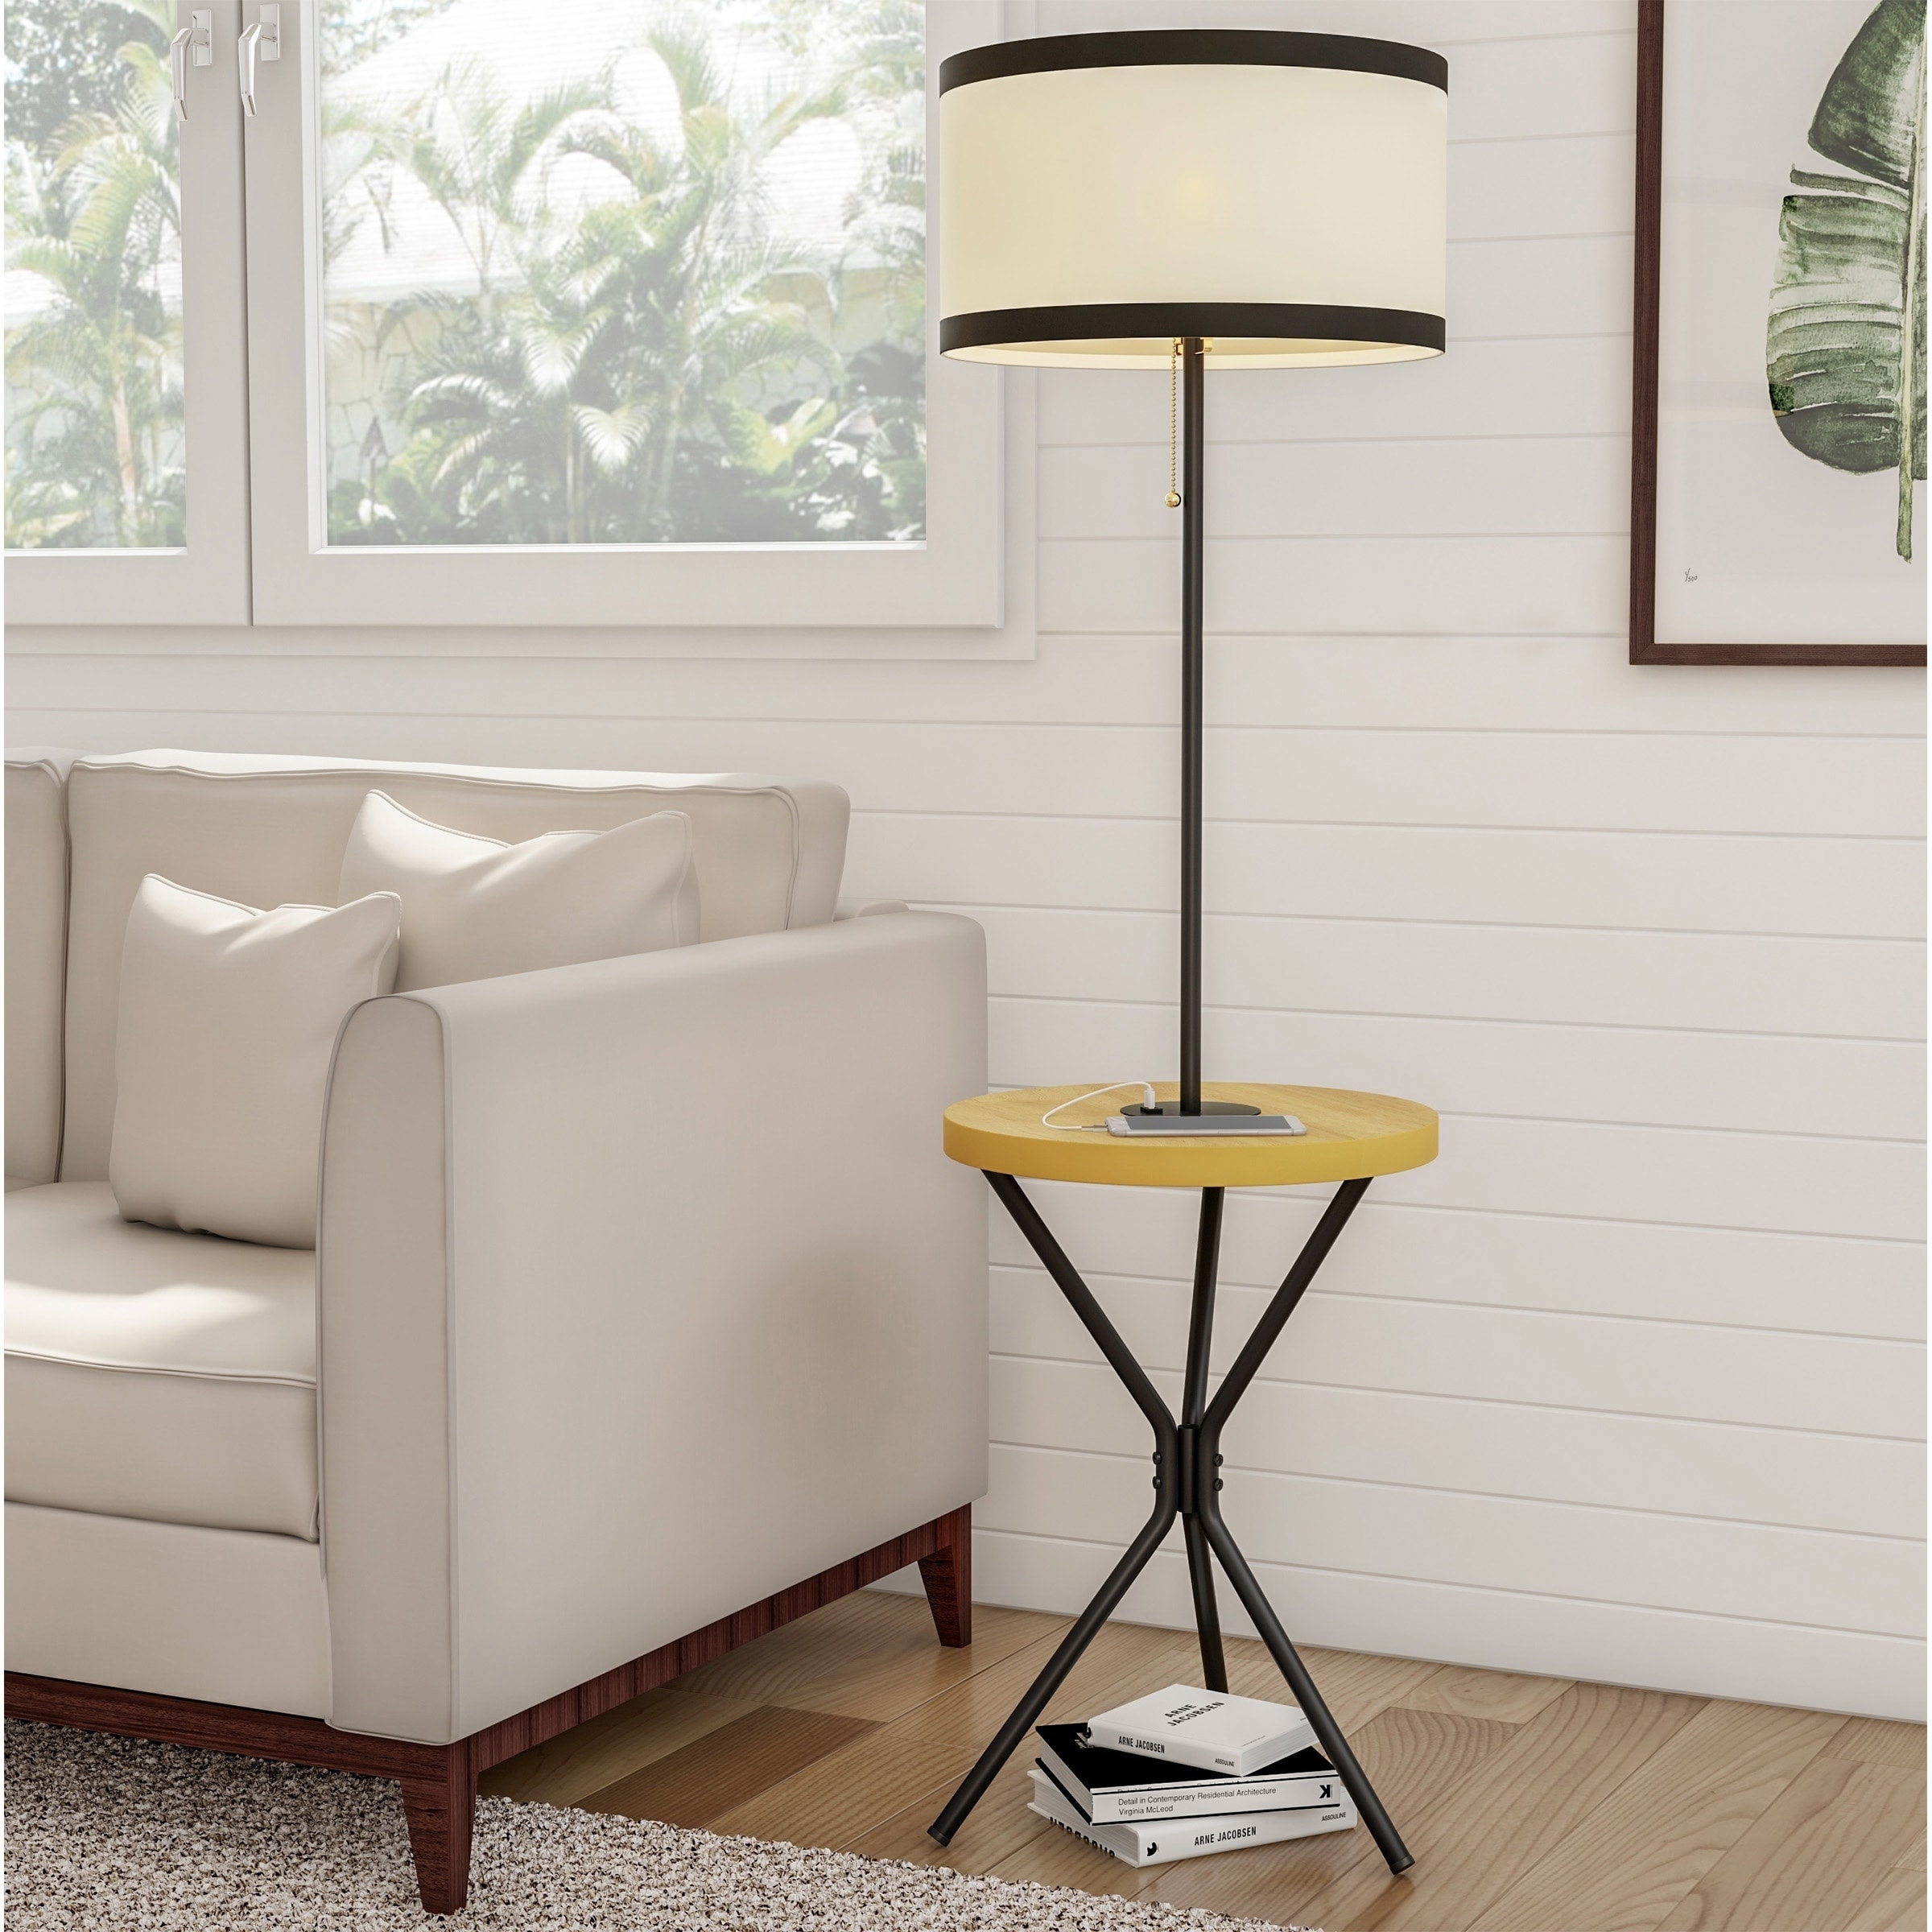 Floor Lamp End Table Mid Century Modern Side Table With Drum Shape Shade By Lavish Home